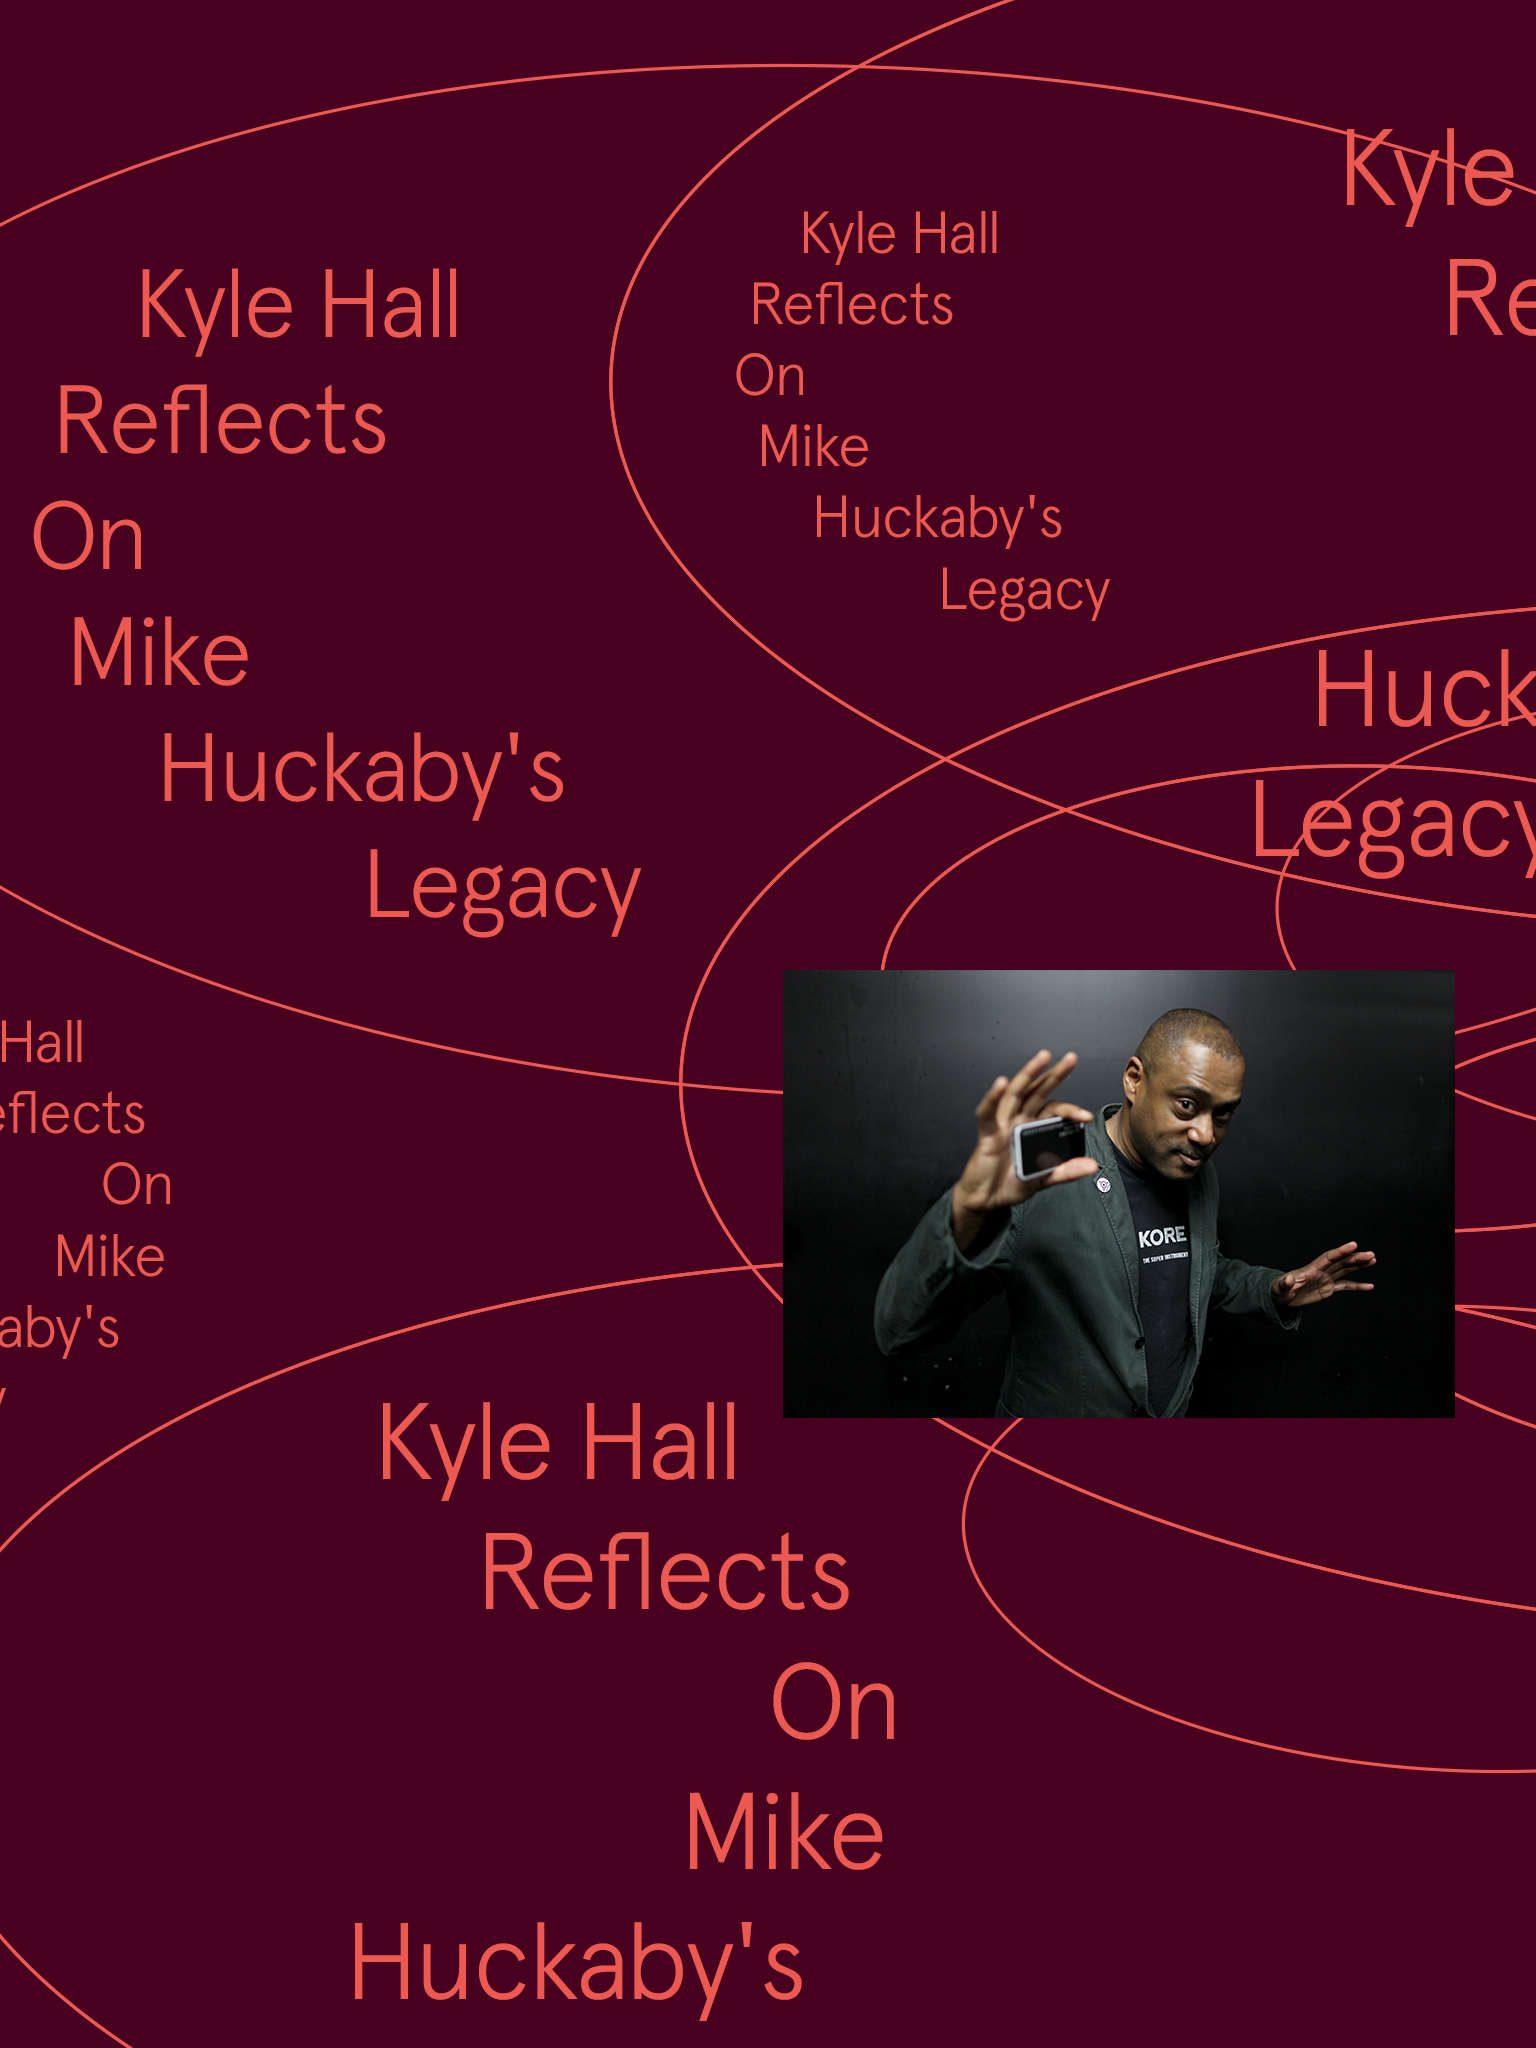 Kyle Hall Reflects On Mike Huckaby's Legacy